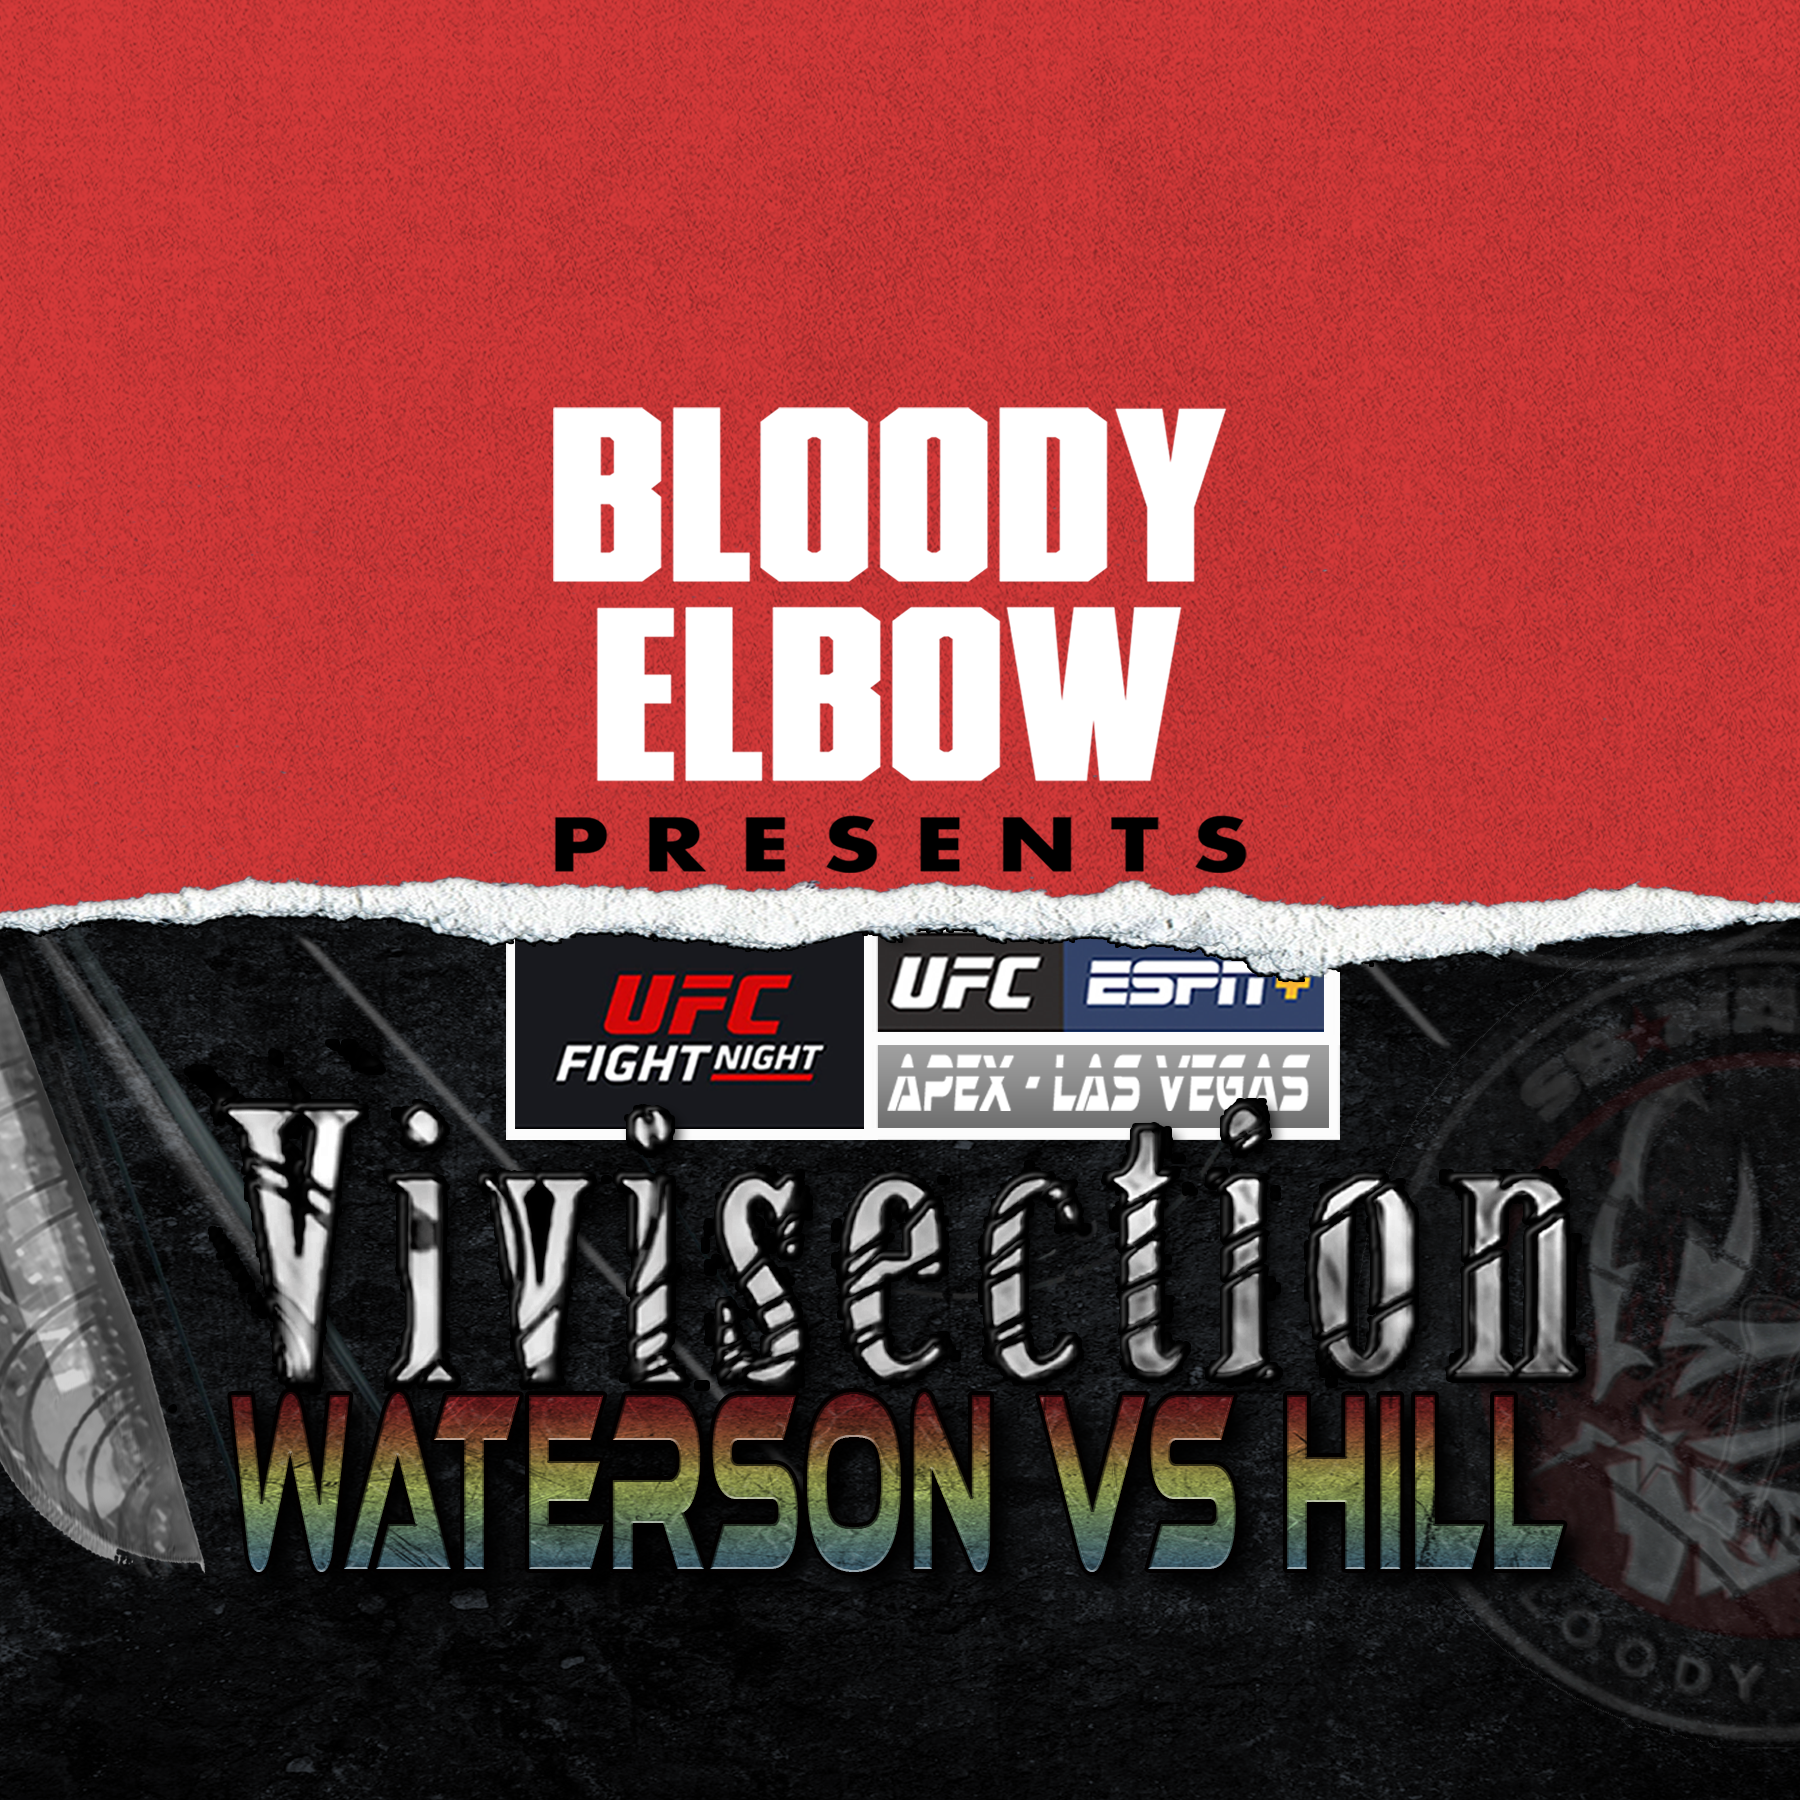 MMA Vivi, The MMA Vivisection, Waterson vs Hill Preview, UFC VEGAS 10 picks and predictions, UFC Analysis, UFC Odds, UFC Podcast,